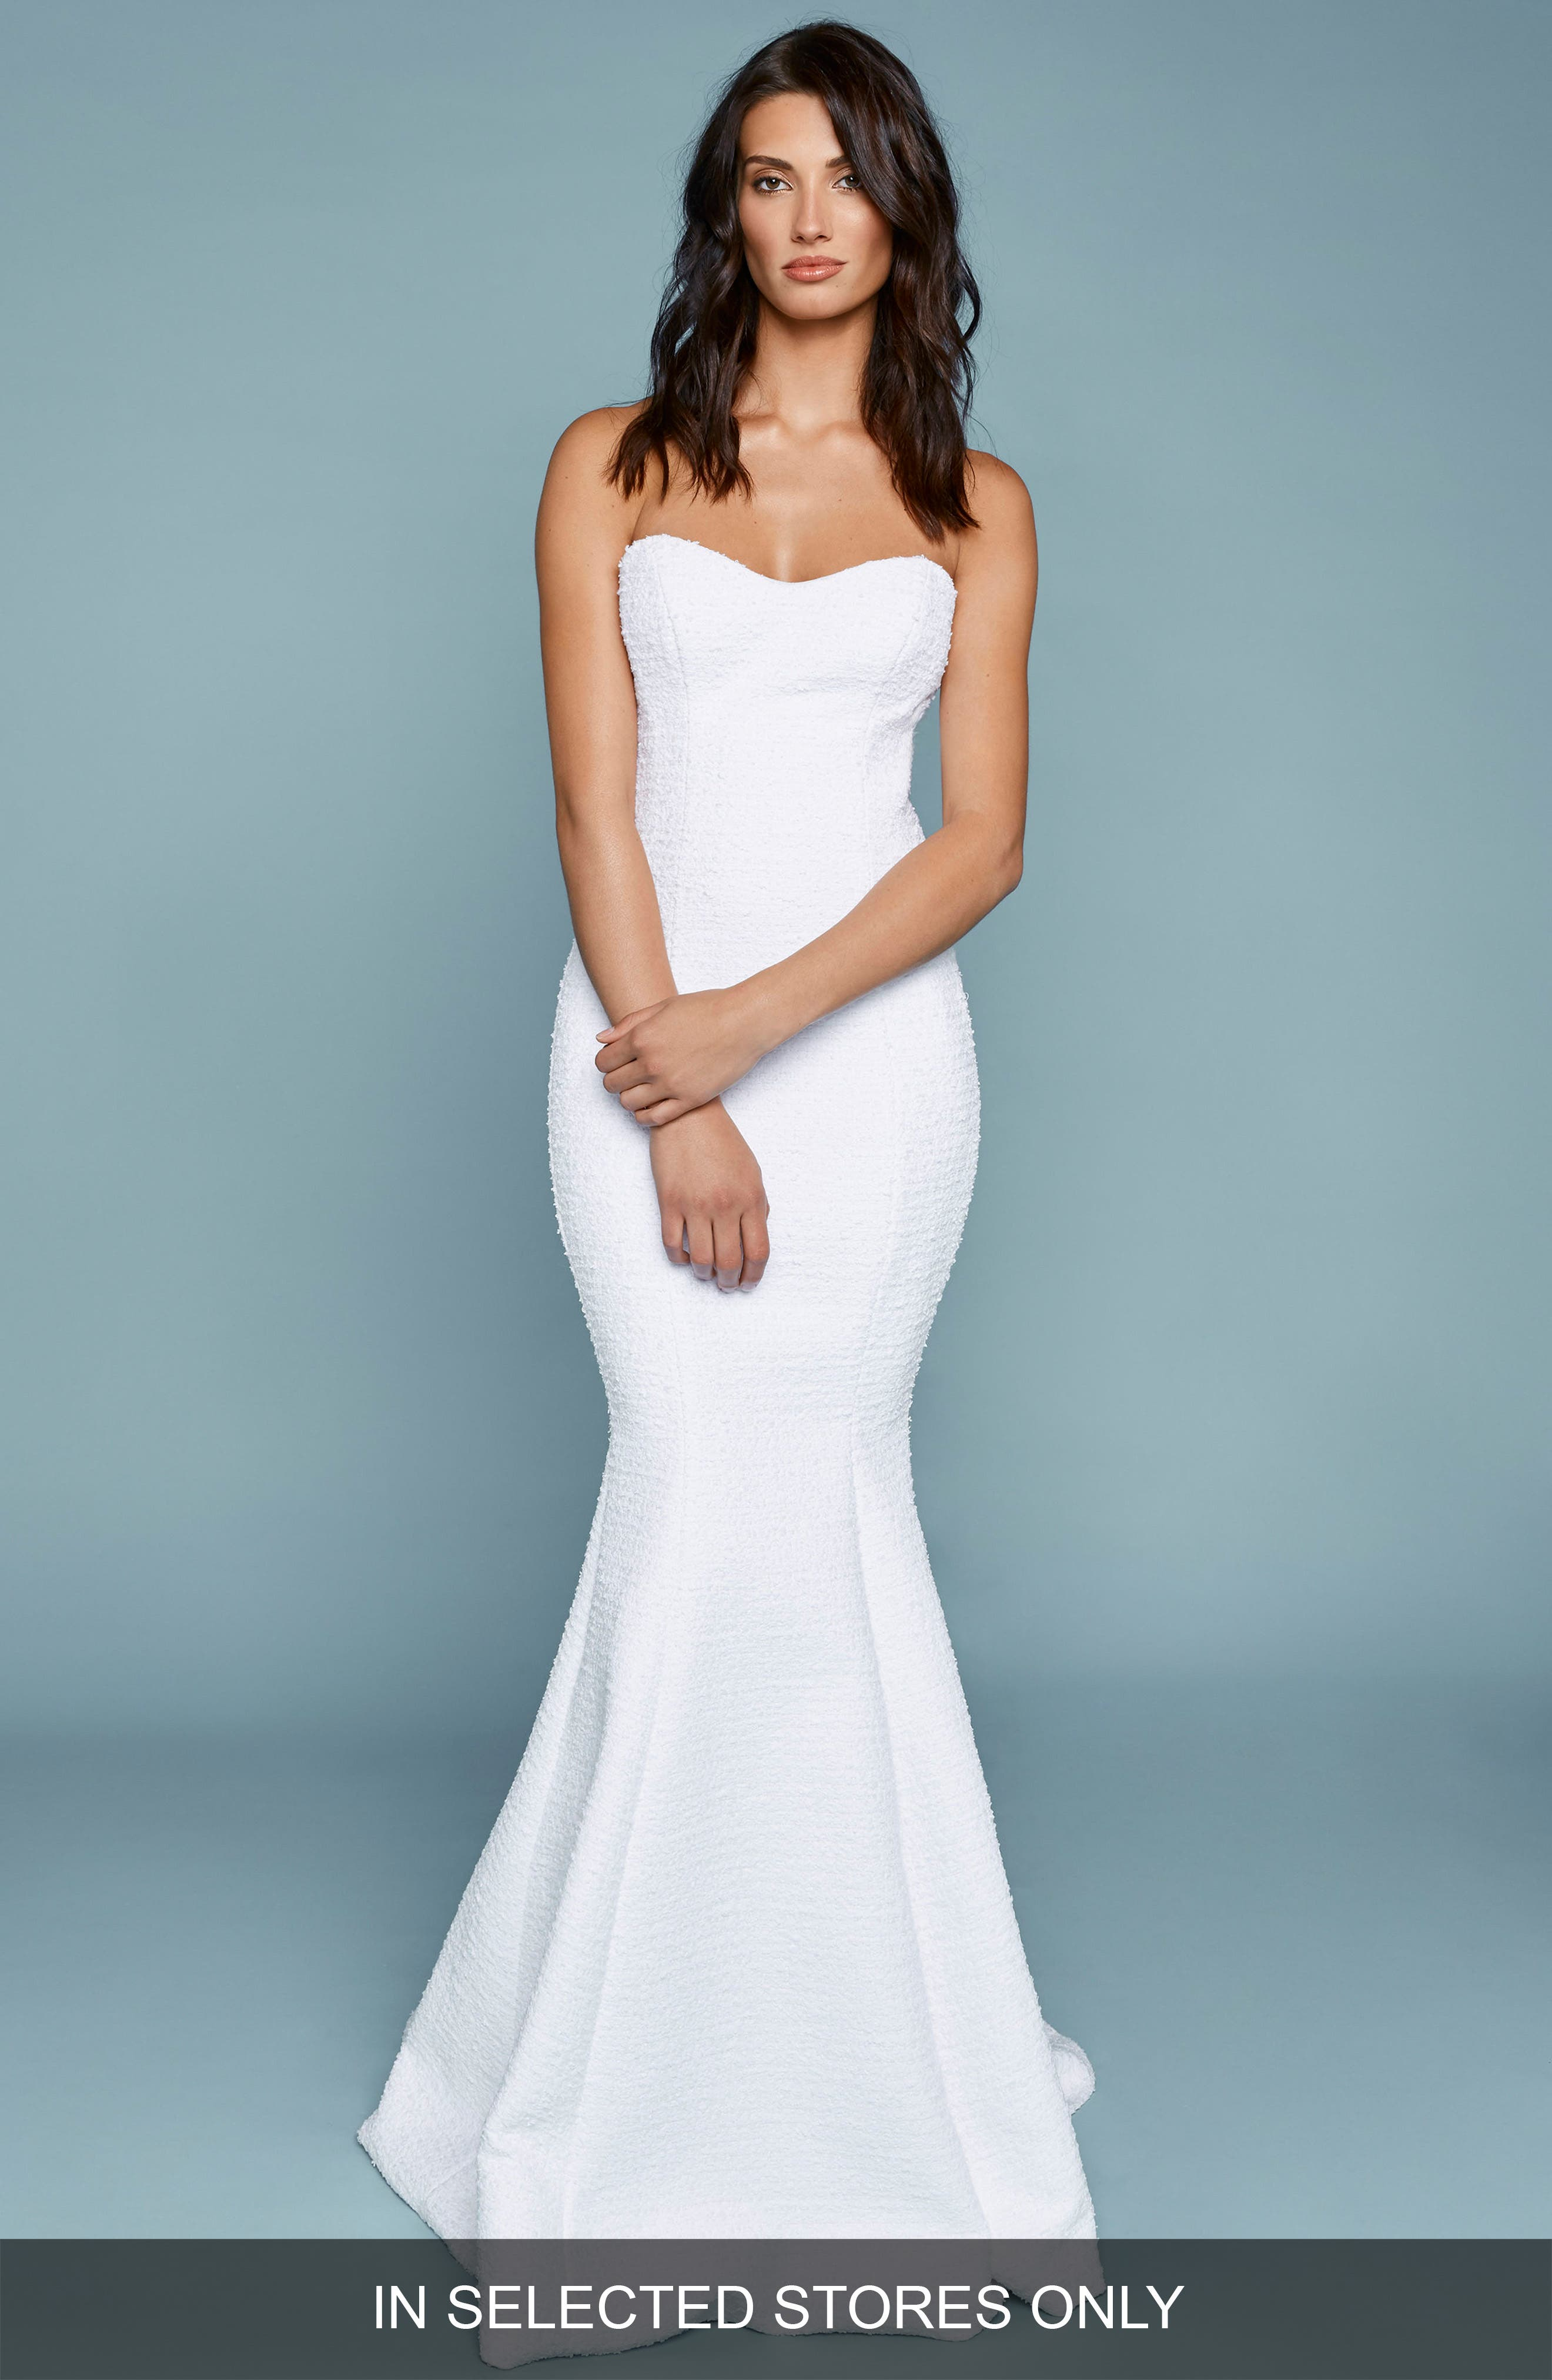 Positano Strapless French Tweed Mermaid Gown,                             Main thumbnail 1, color,                             IVORY